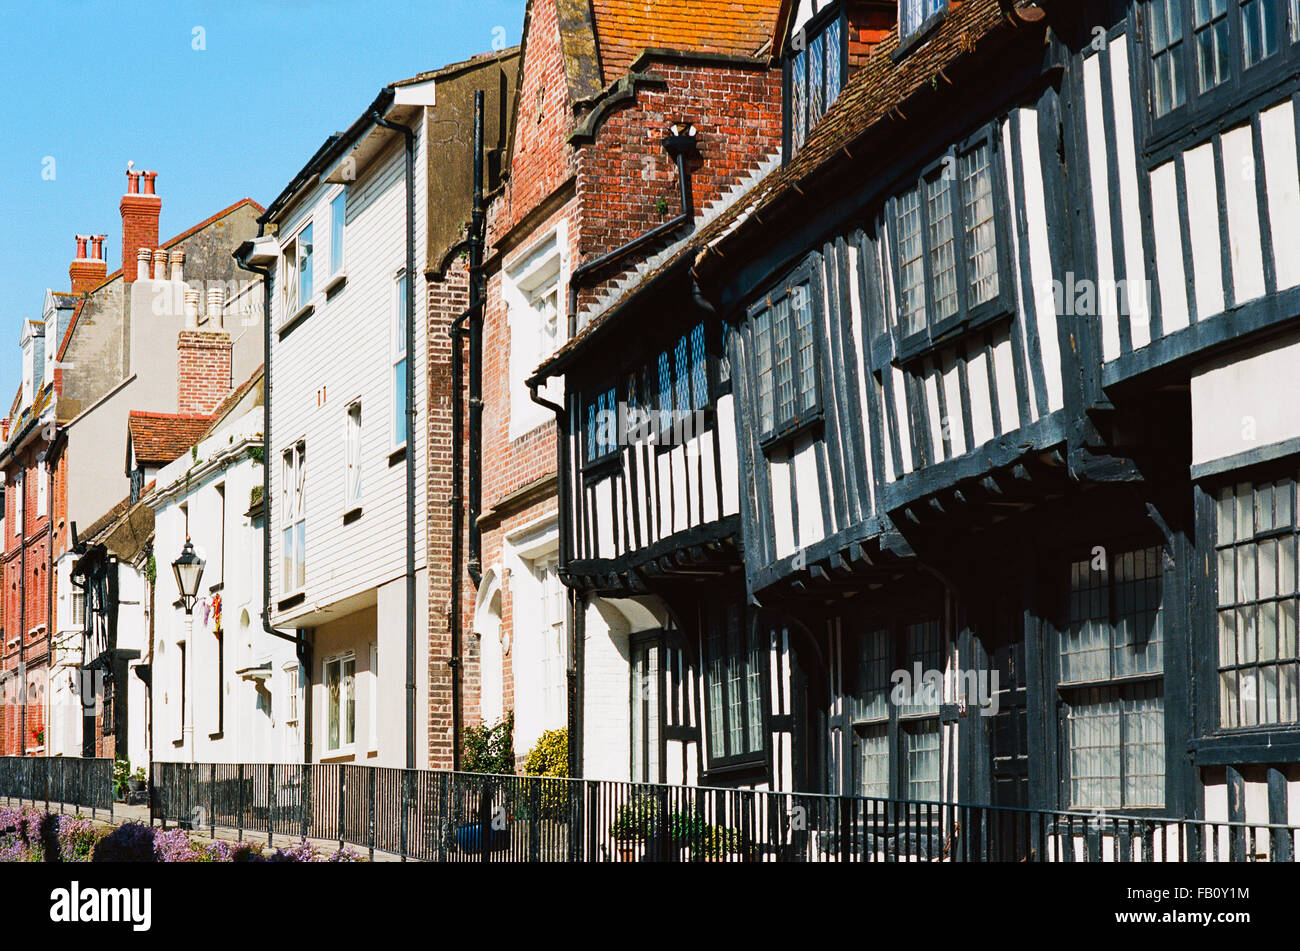 Hastings Old Town houses, on All Saints Street, Sussex, UK - Stock Image